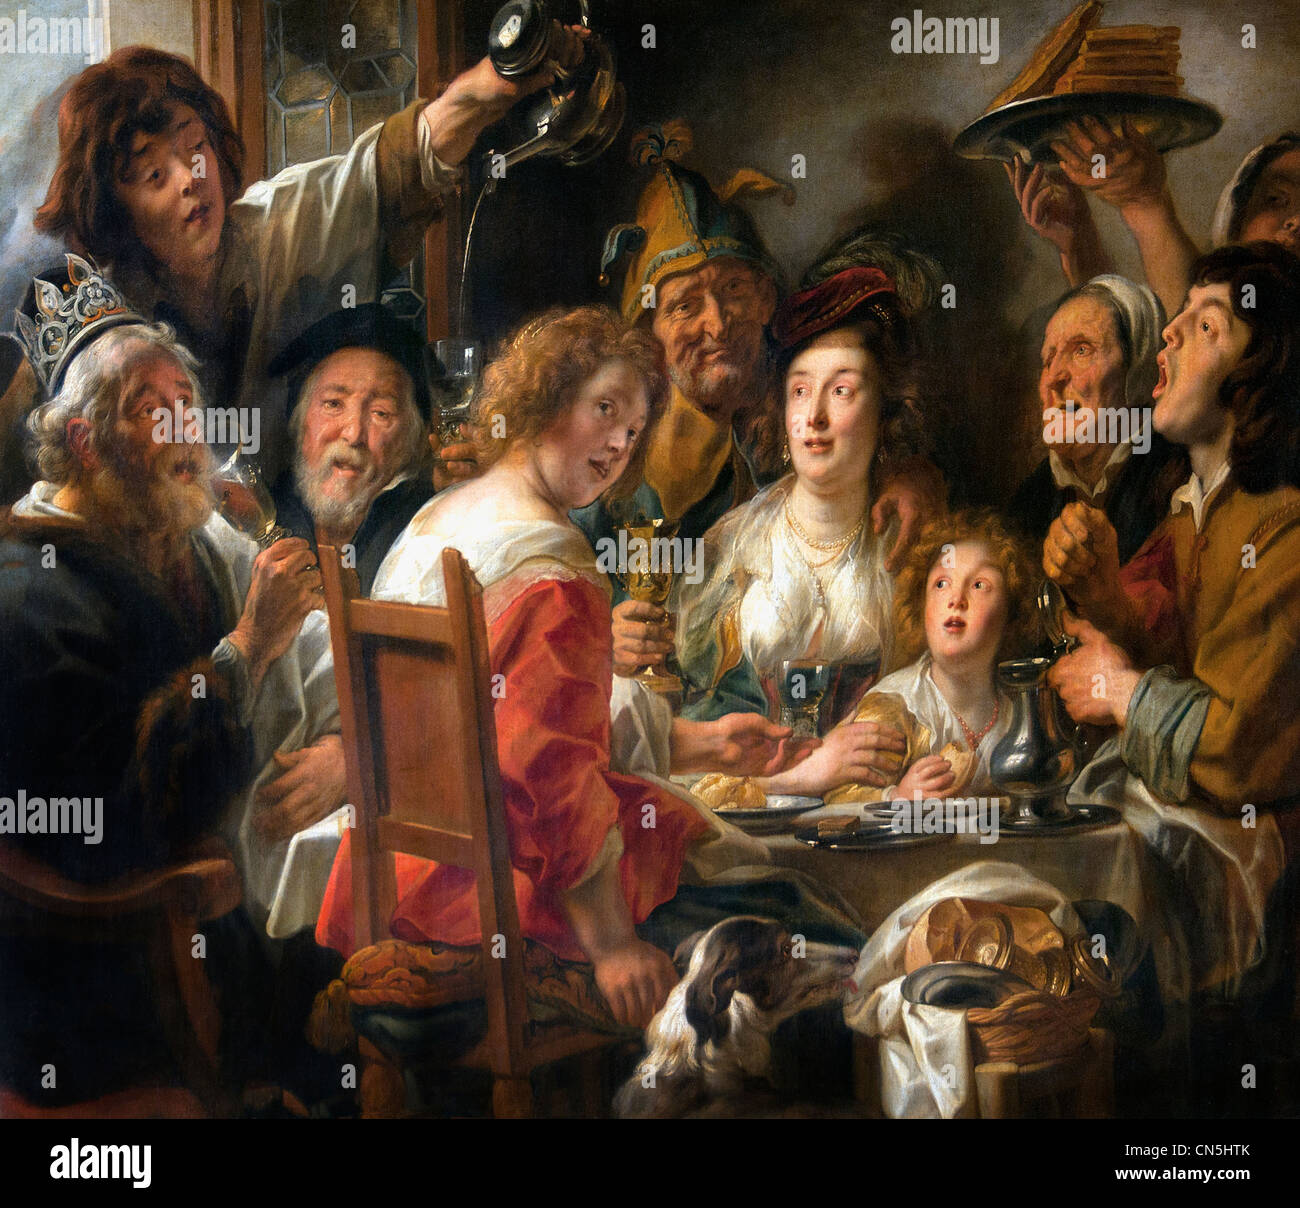 The king drinks - Family meals the day of the Epiphany Jacob JORDAENS 1593 - 1678 Belgium Begian - Stock Image